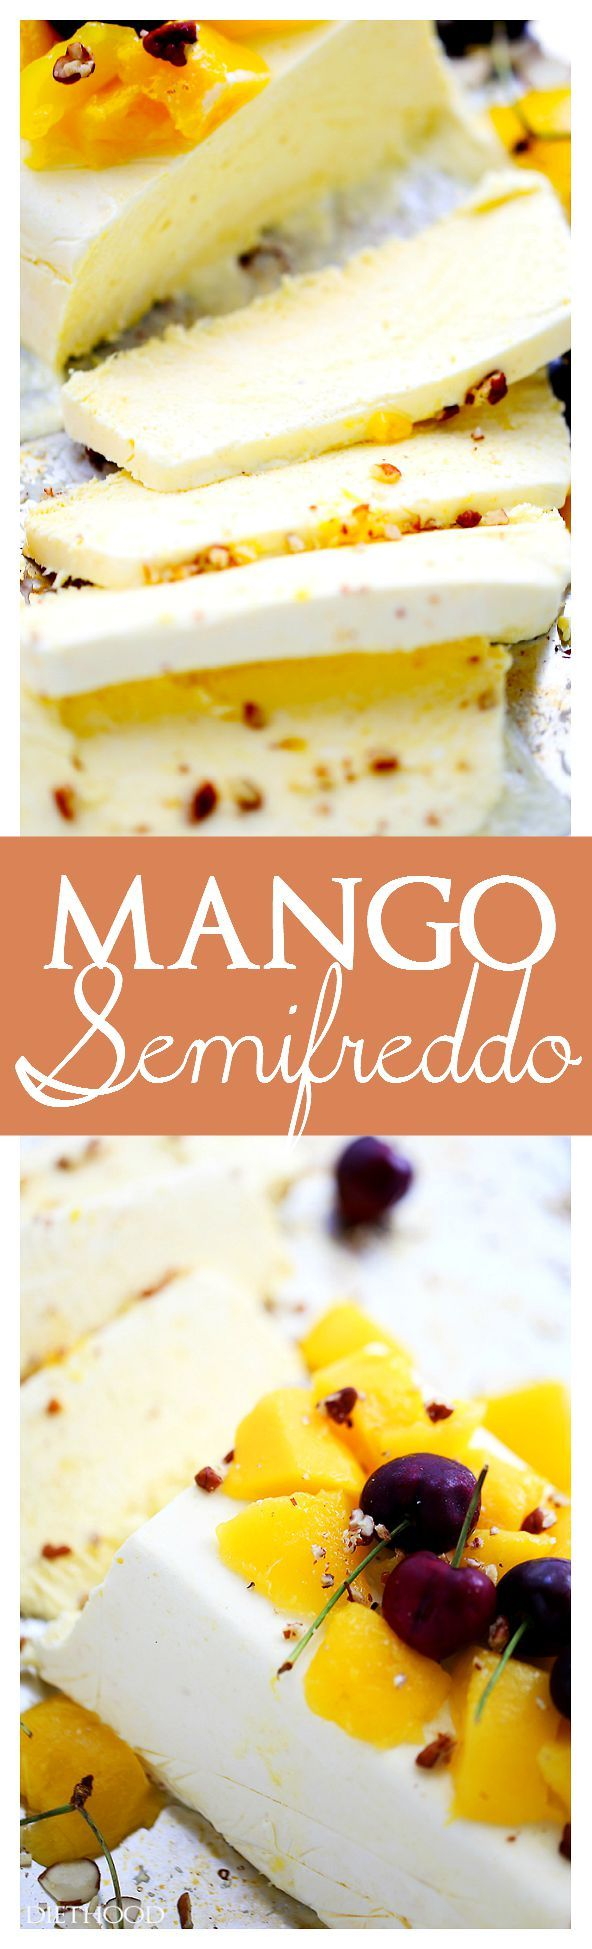 Mango Semifreddo | Recipe | Ice Cream Maker, Summer Desserts and Mango